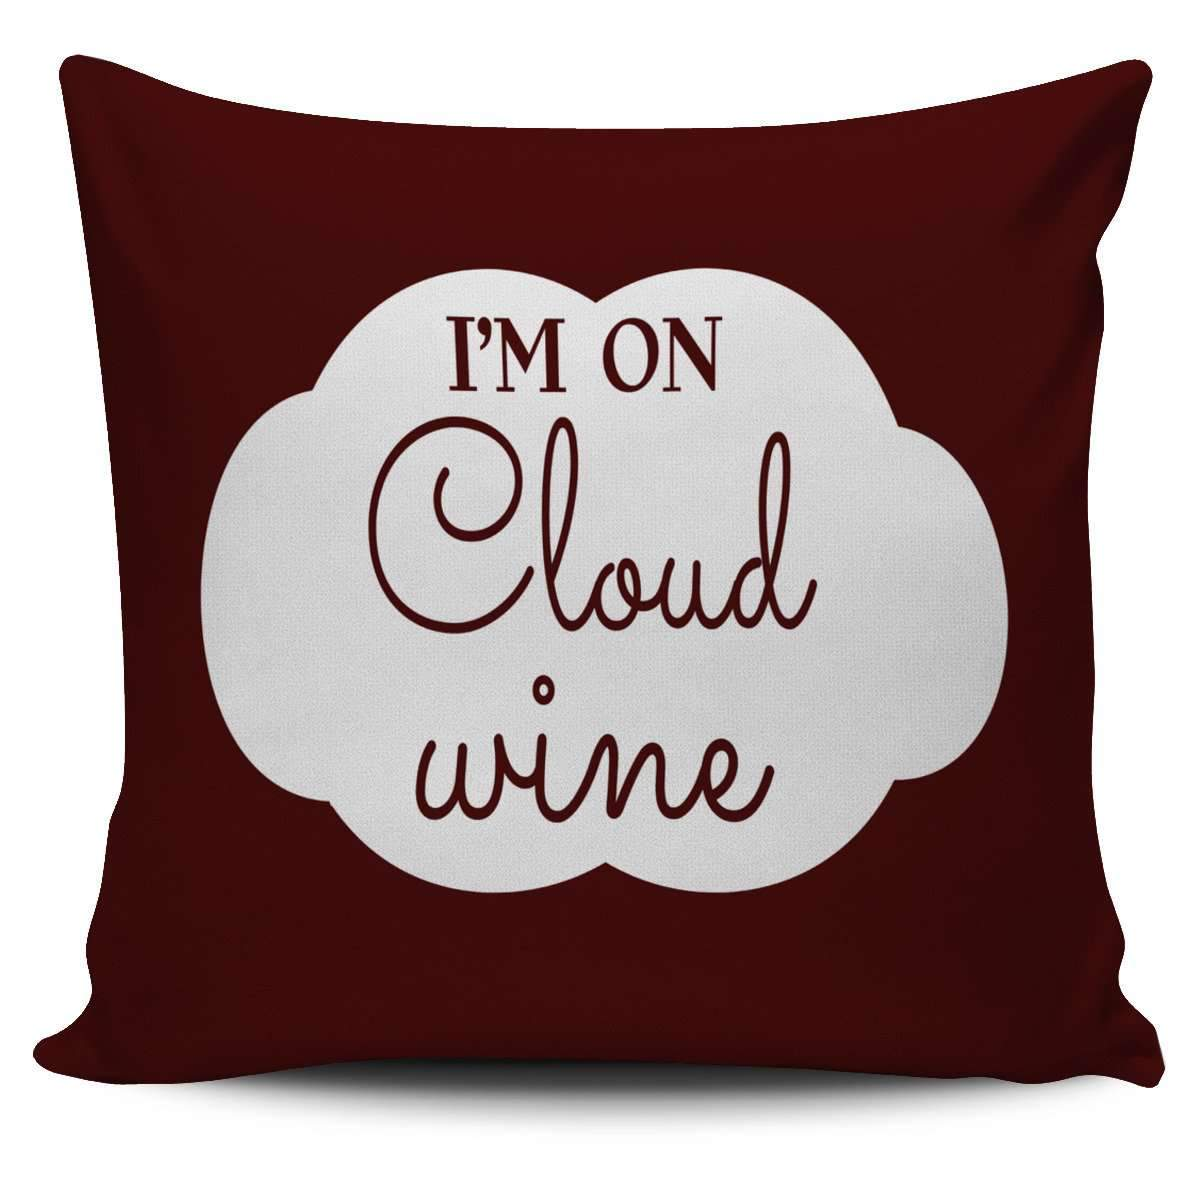 NP Cloud Wine Pillowcase Umisfashion Store